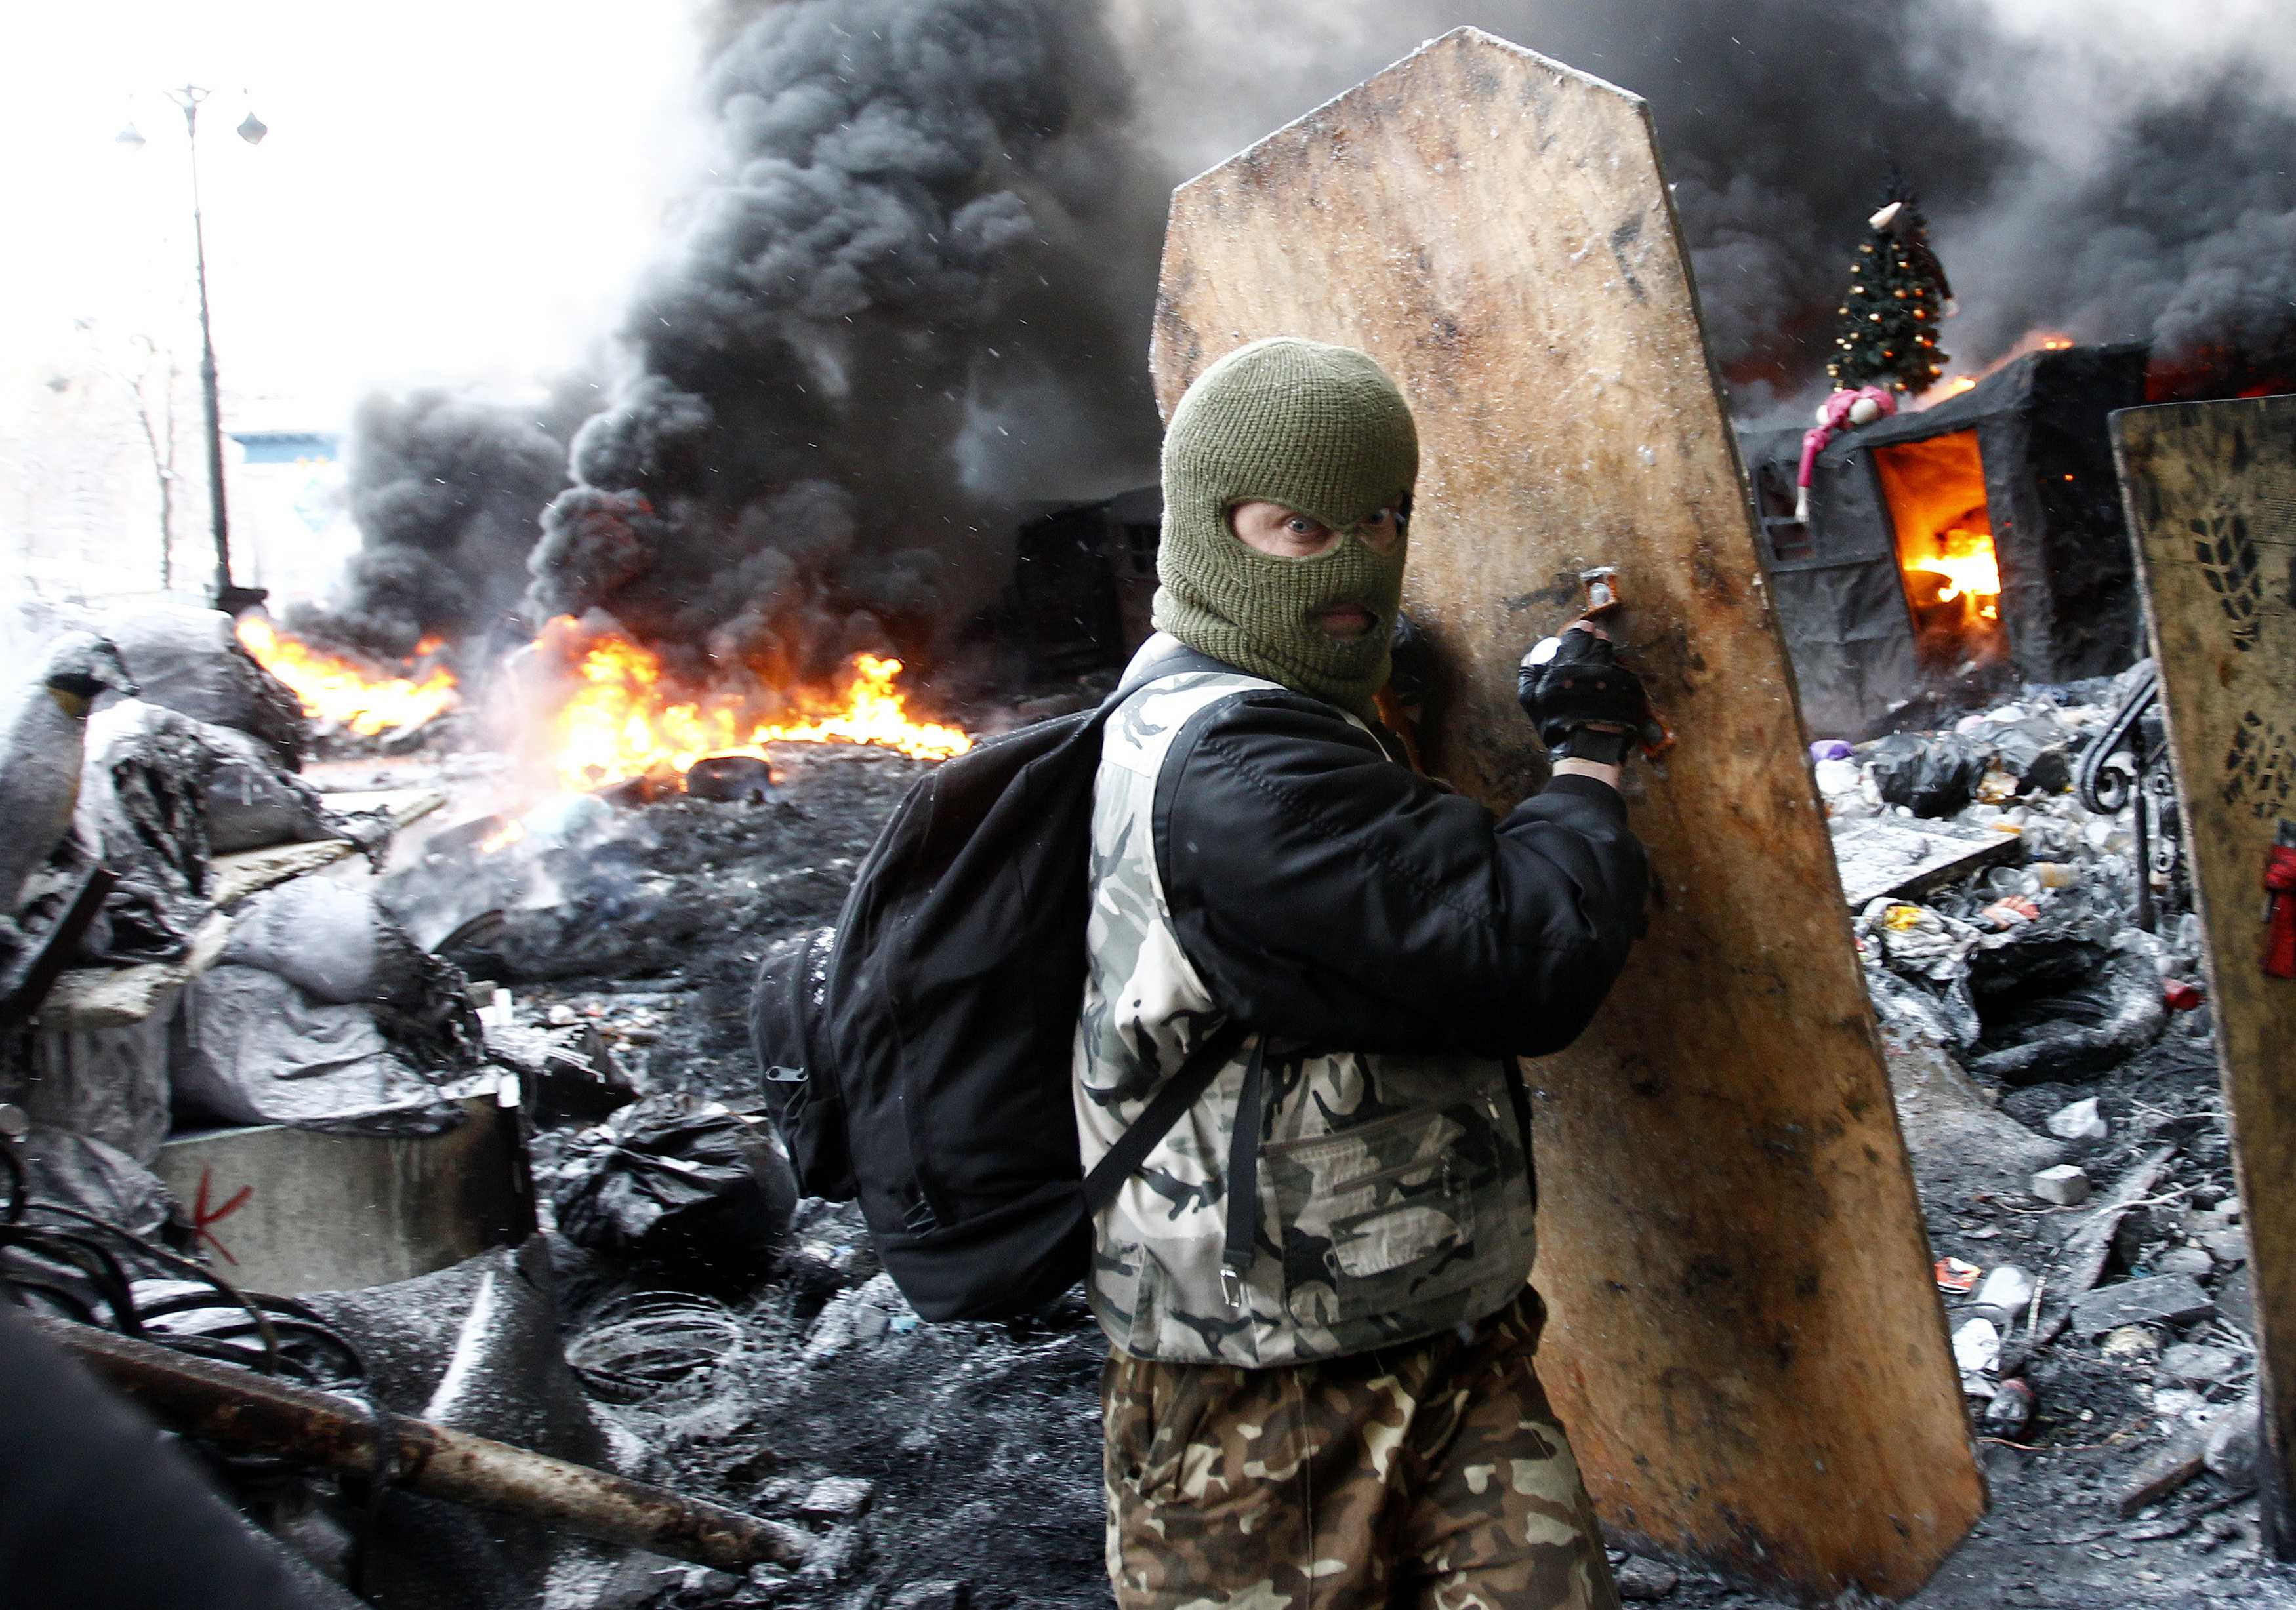 Gallery: Mass protest in Kiev continues as clashes intensify between police and protesters